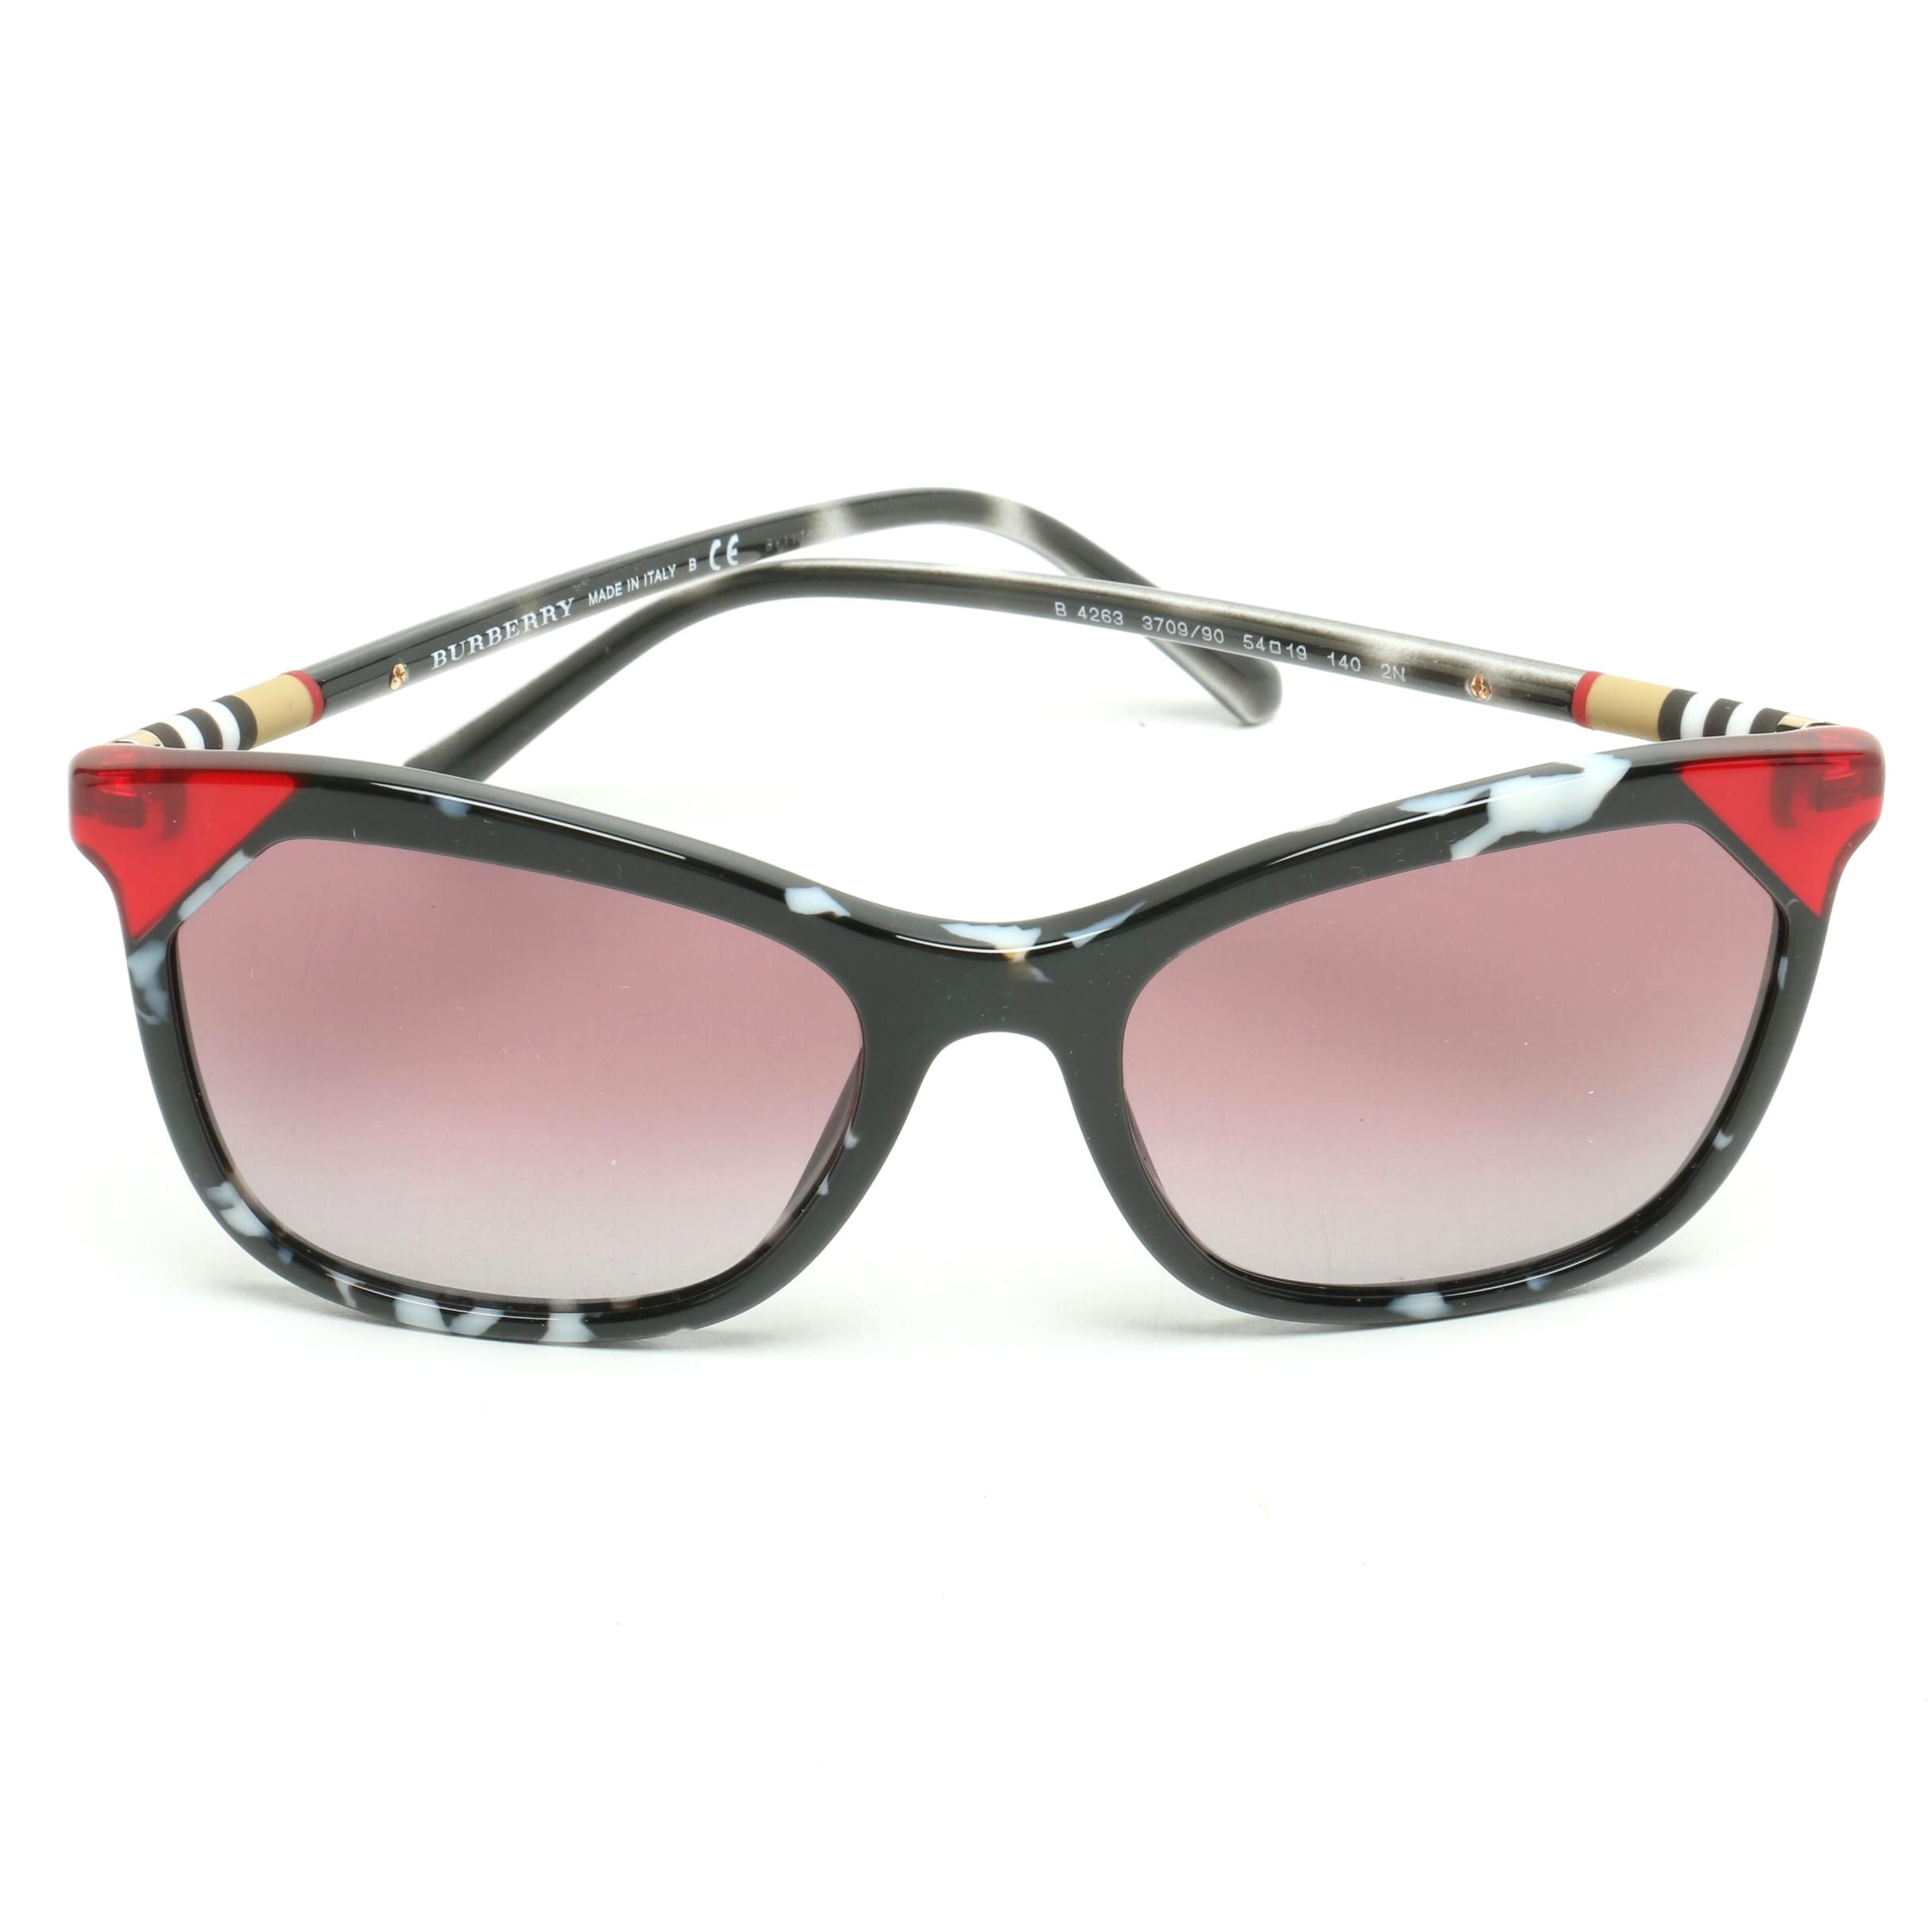 Burberry Multicolored Butterfly Sunglasses with Case and Box